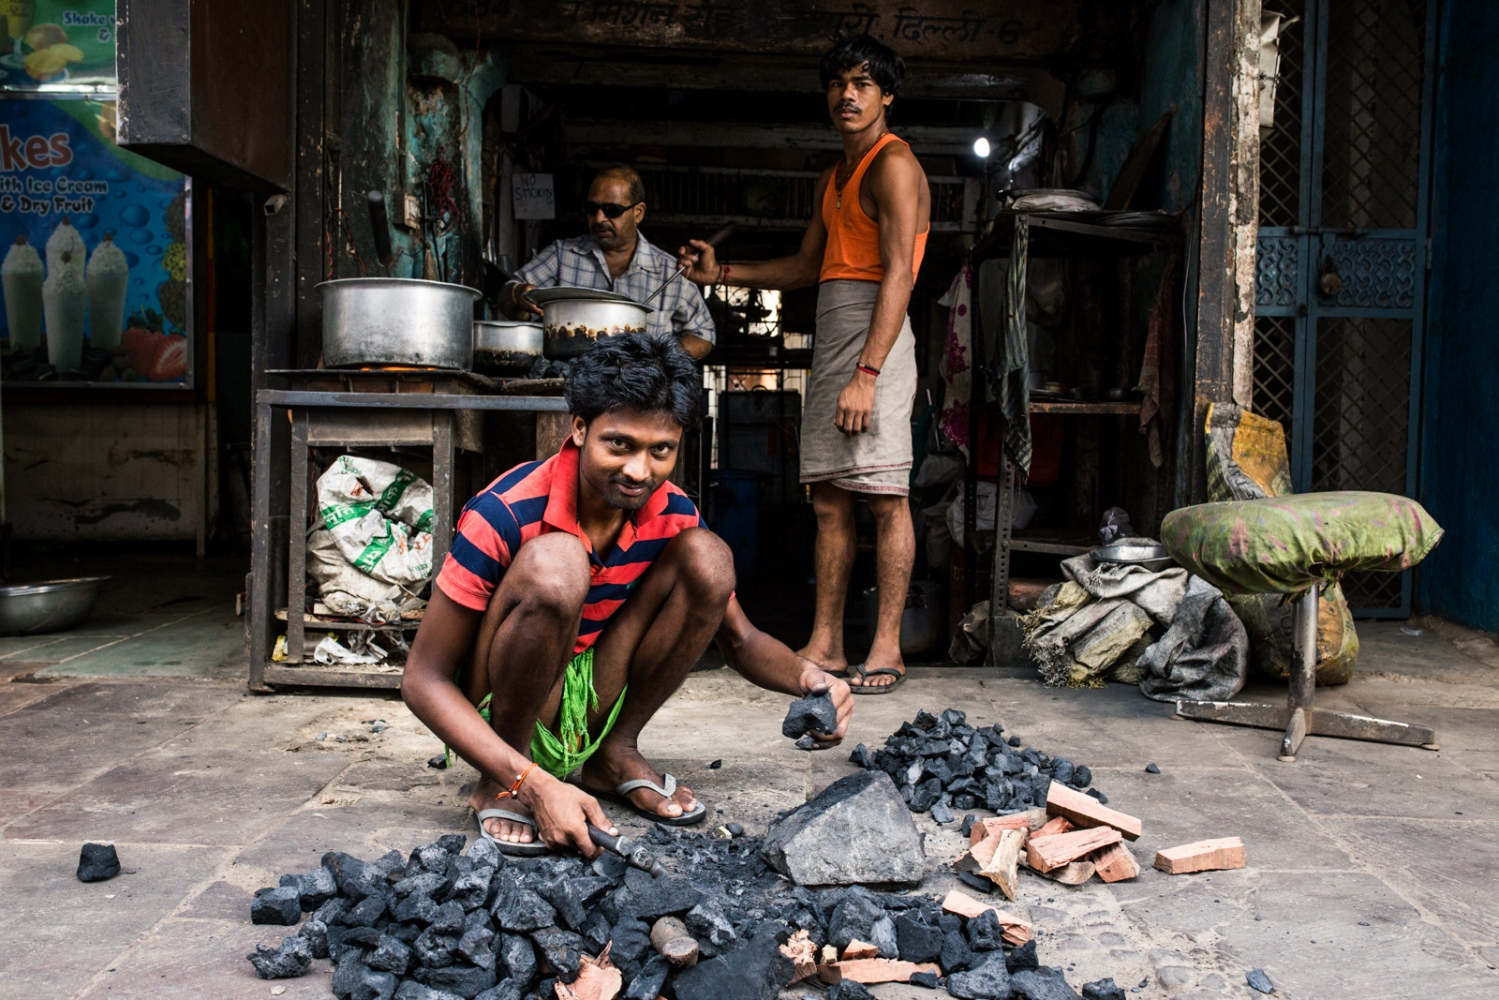 """Man in New Delhi, India, breaks up coal on the side fo the street to use as fuel for the fires so their business can stay open. Recently, environmental policy expert, Michael Shellenberger, gave a TED talk and was quoted saying, """"We're not in a clean energy revolution; we're in a clean energy crisis."""" He isn't wrong. Despite all the amazing developments and stories surrounding renewables, such as solar and wind, data paints a rather sobering message. According to the International Energy Agency's data, as of 2013, coal still accounts for 41% of global electricity generation and is expected to increase with the development of nations such as India and China. Solar, wind, geothermal, etc. account for 5.7% of global electricity supply. If we include clean electricity sources such as nuclear and hydro - the clean sources of energy account for 32.6% Despite this, fossil fuels, such as coal, oil, and natural gas, used to produce electricity far outpaces clean electricity and are expected to rise with increases in population and living standards."""